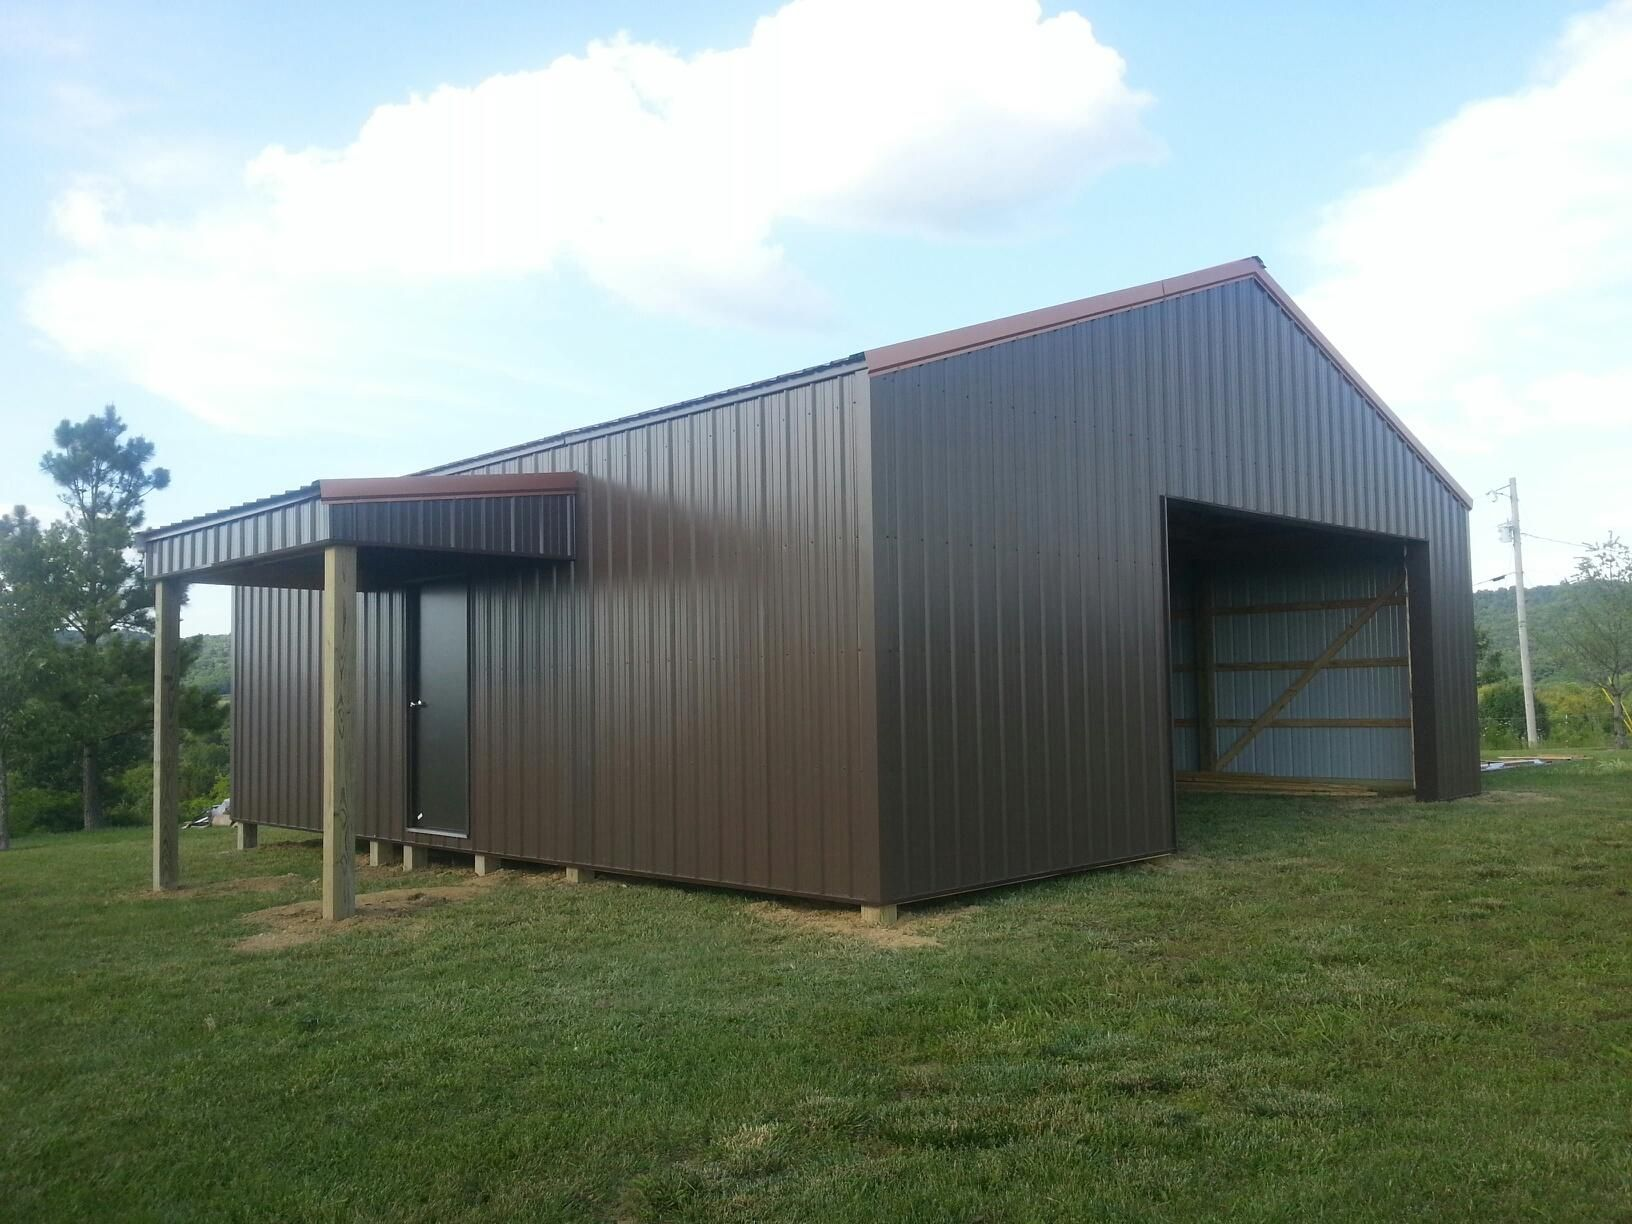 Welcome To National Barn Company Full Service Pole Design Construction Established In Barns Horse And Post Frame Buildings